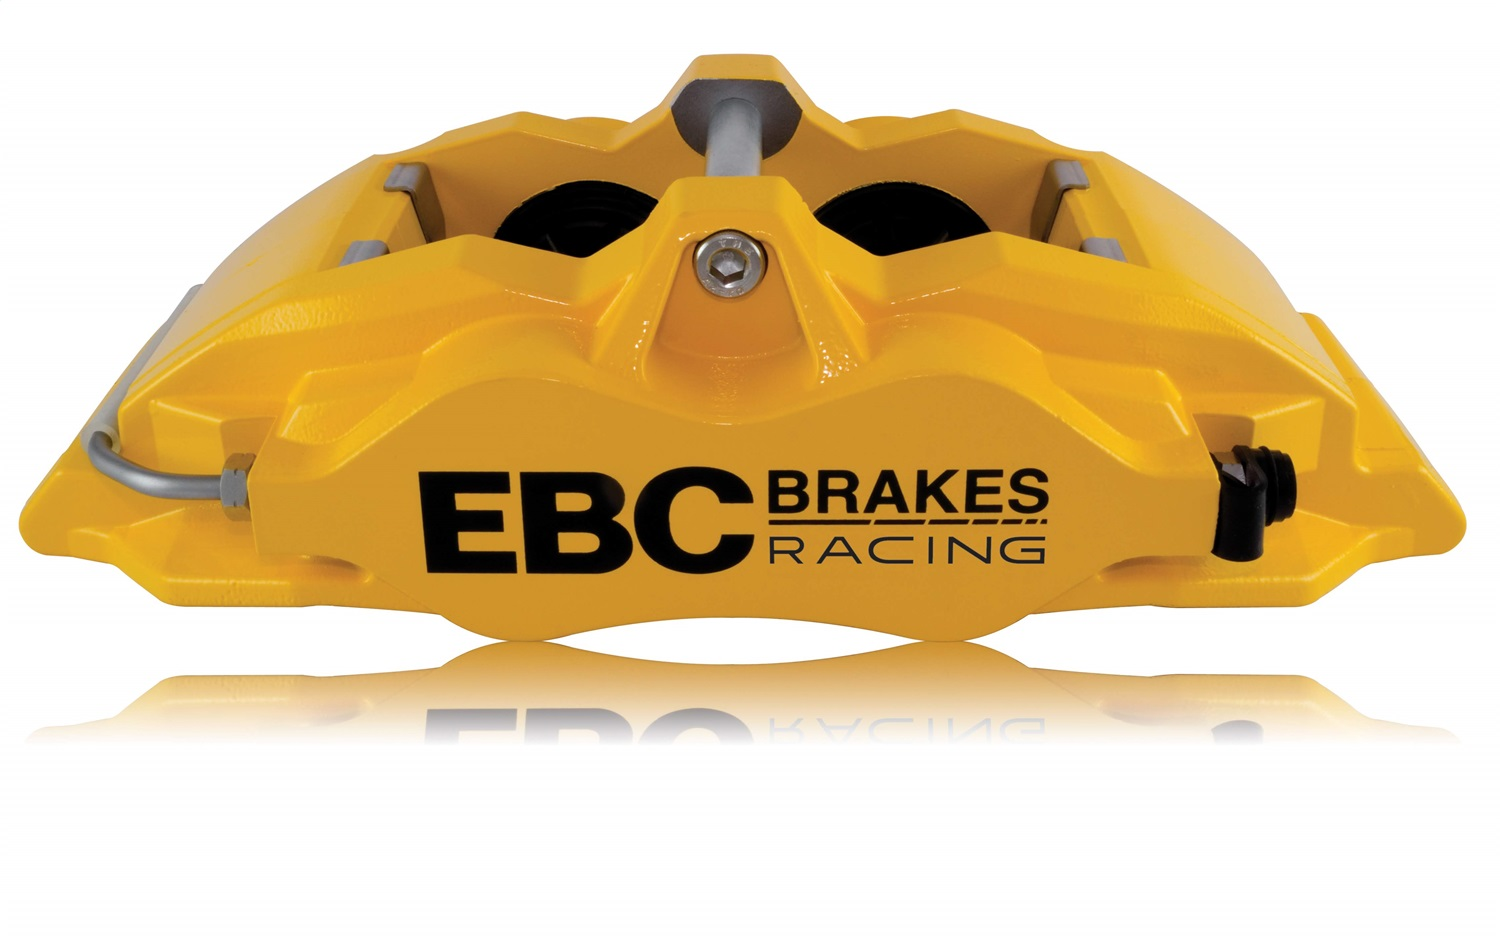 EBC Brakes BC4104YEL-R Apollo-4 Brake Calipers Fits 94-11 M3 RX-8